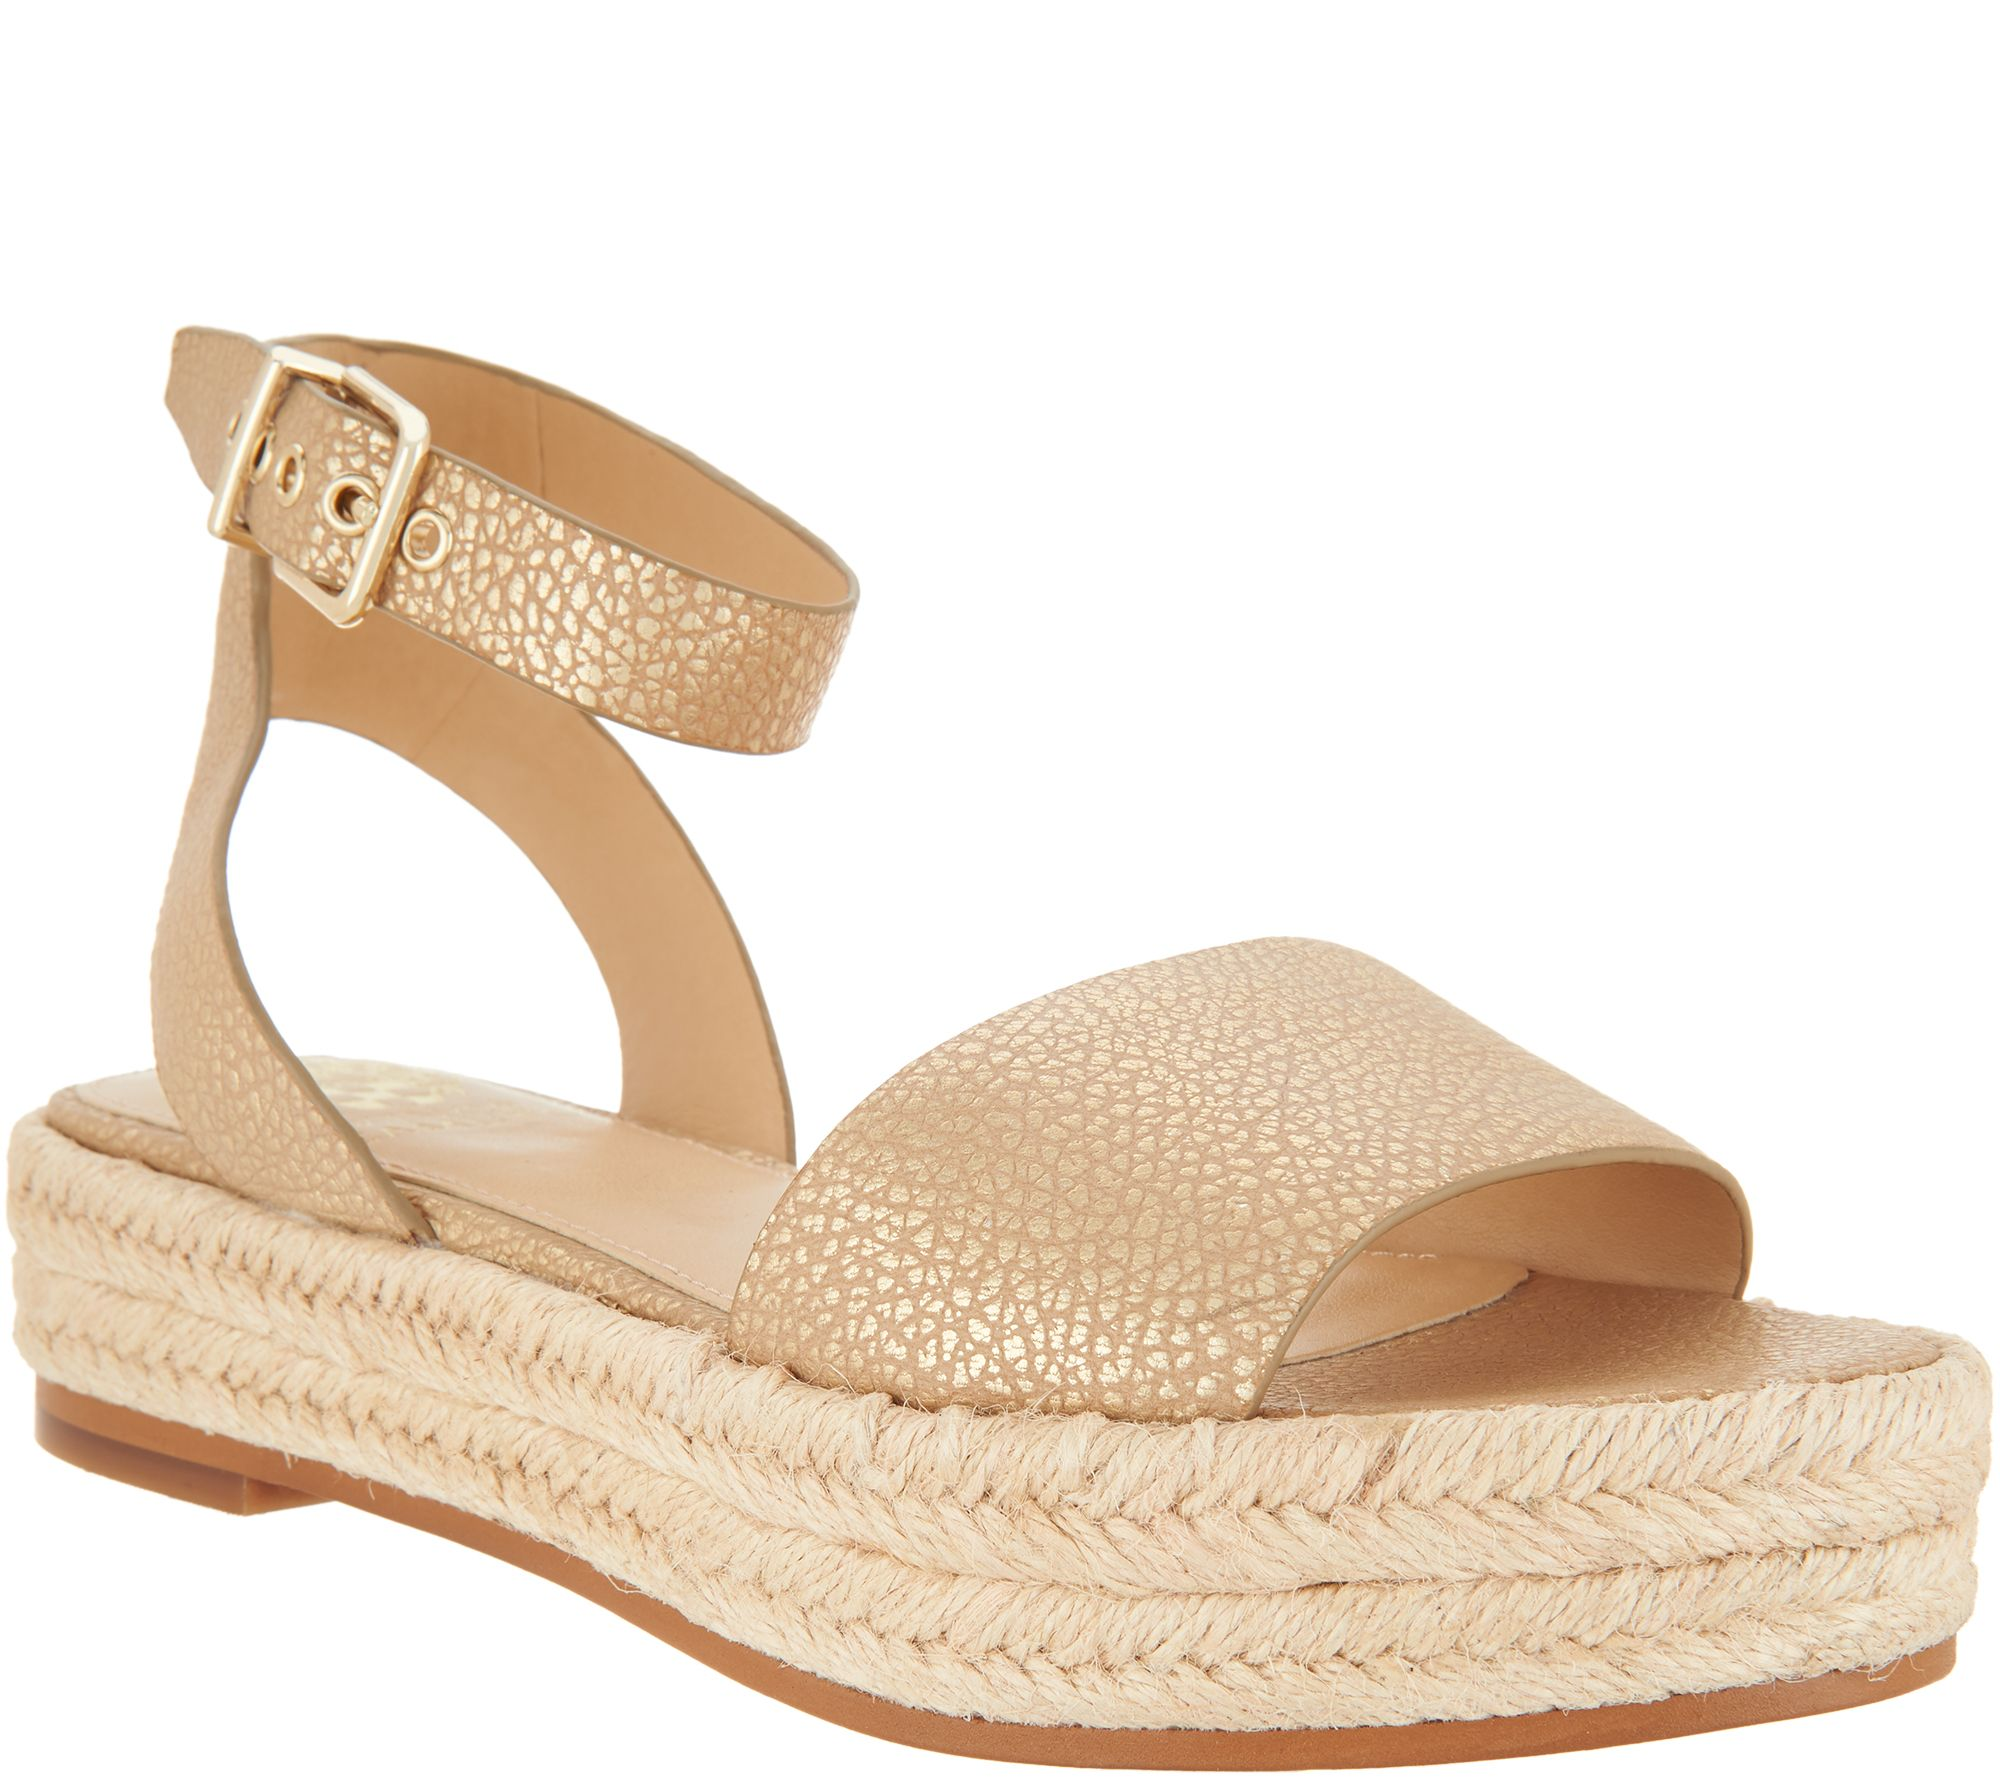 3953db85cd9f Vince Camuto Leather Ankle Strap Espadrilles - Kathalia - Page 1 — QVC.com